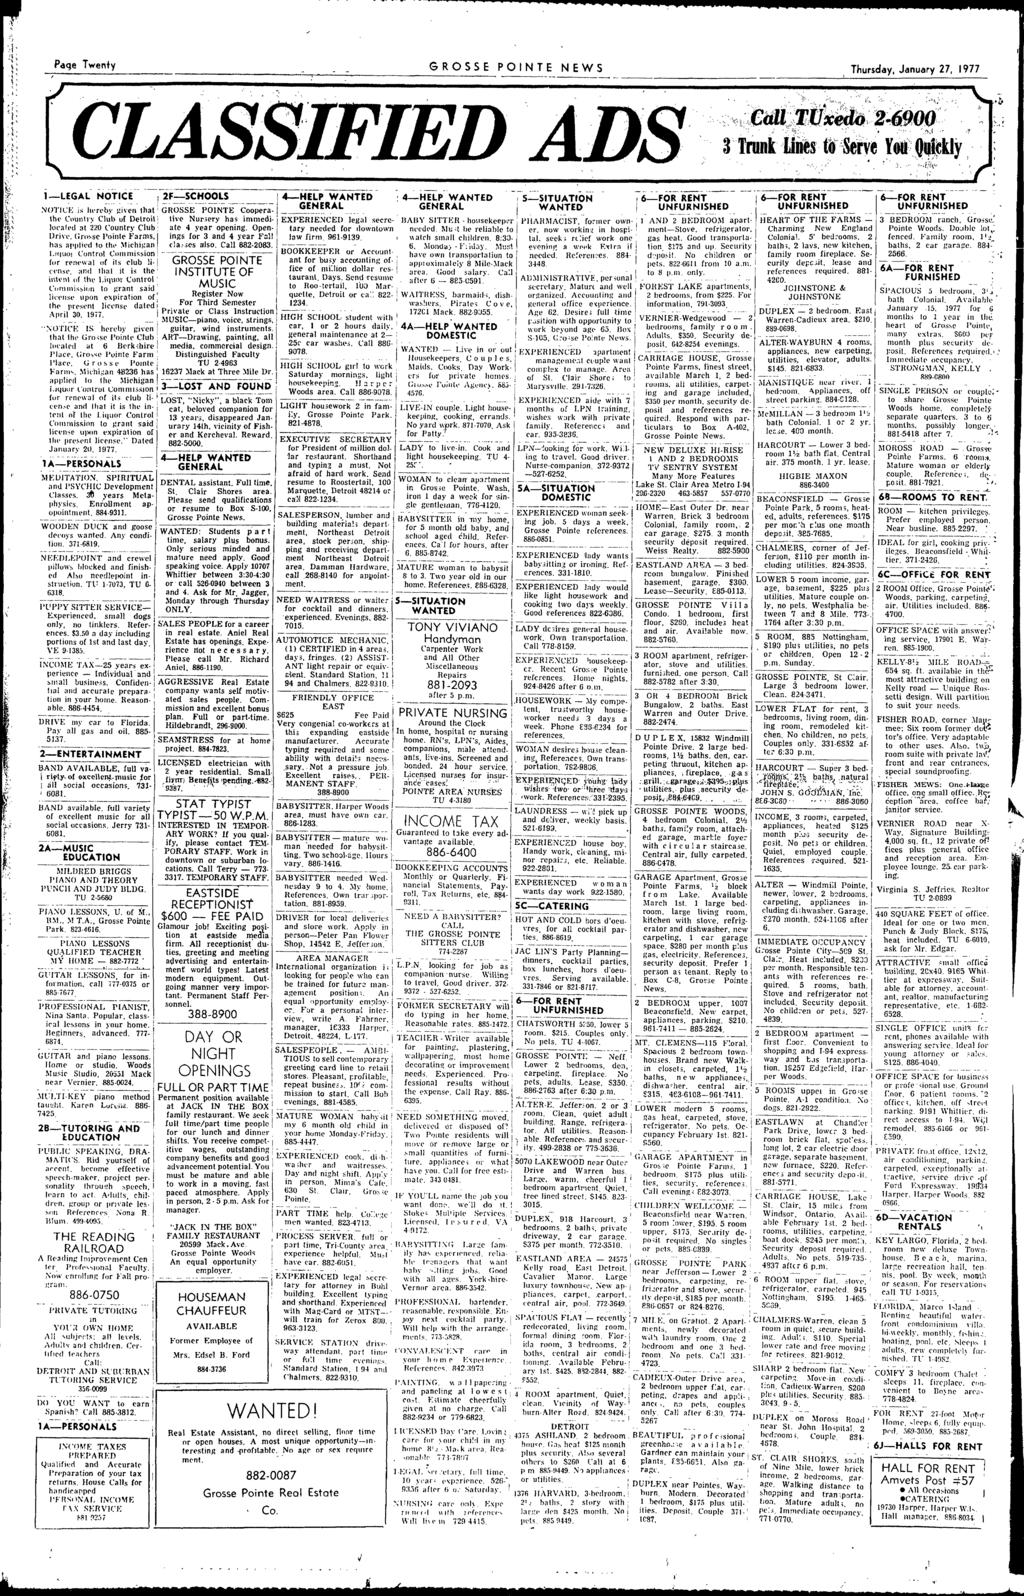 ": "" Page Twenty GROSSE PONTE NEWS Thursday January 27 1977 CLASSFEDADS \: k ----- --------- ---- i-legal NOTCE-- '--ij:=-schooa:s--- 4-HELPWANTEO- : 4-HELP WANTED --S'=':STUATON FOR'RENT''- 6-FOR"